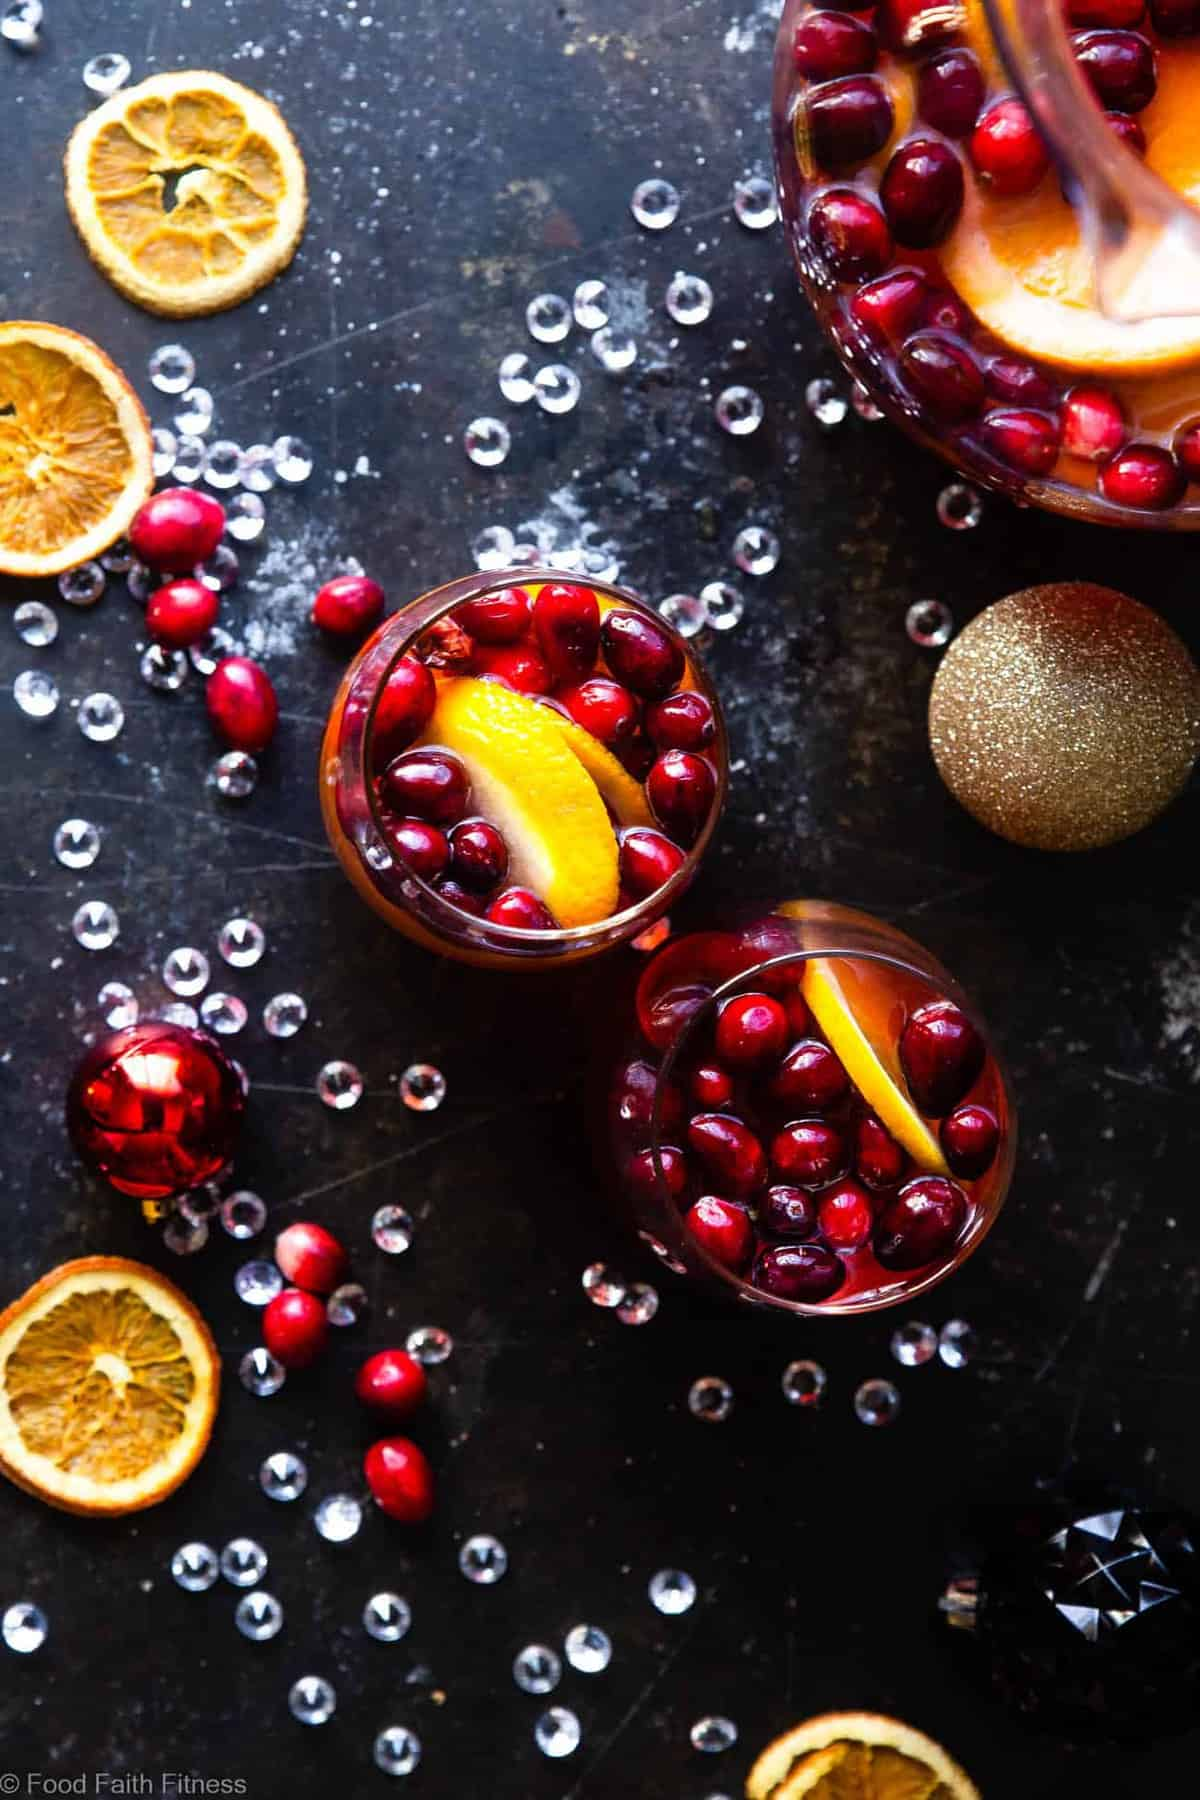 Sparkling Holiday Champagne Sangria - Full of tart cranberries and sweet oranges, this is an easy, better-for-you cocktail that is perfect to serve a crowd this Holiday season! Fizzy, festive and tasty! | #Foodfaithfitness |